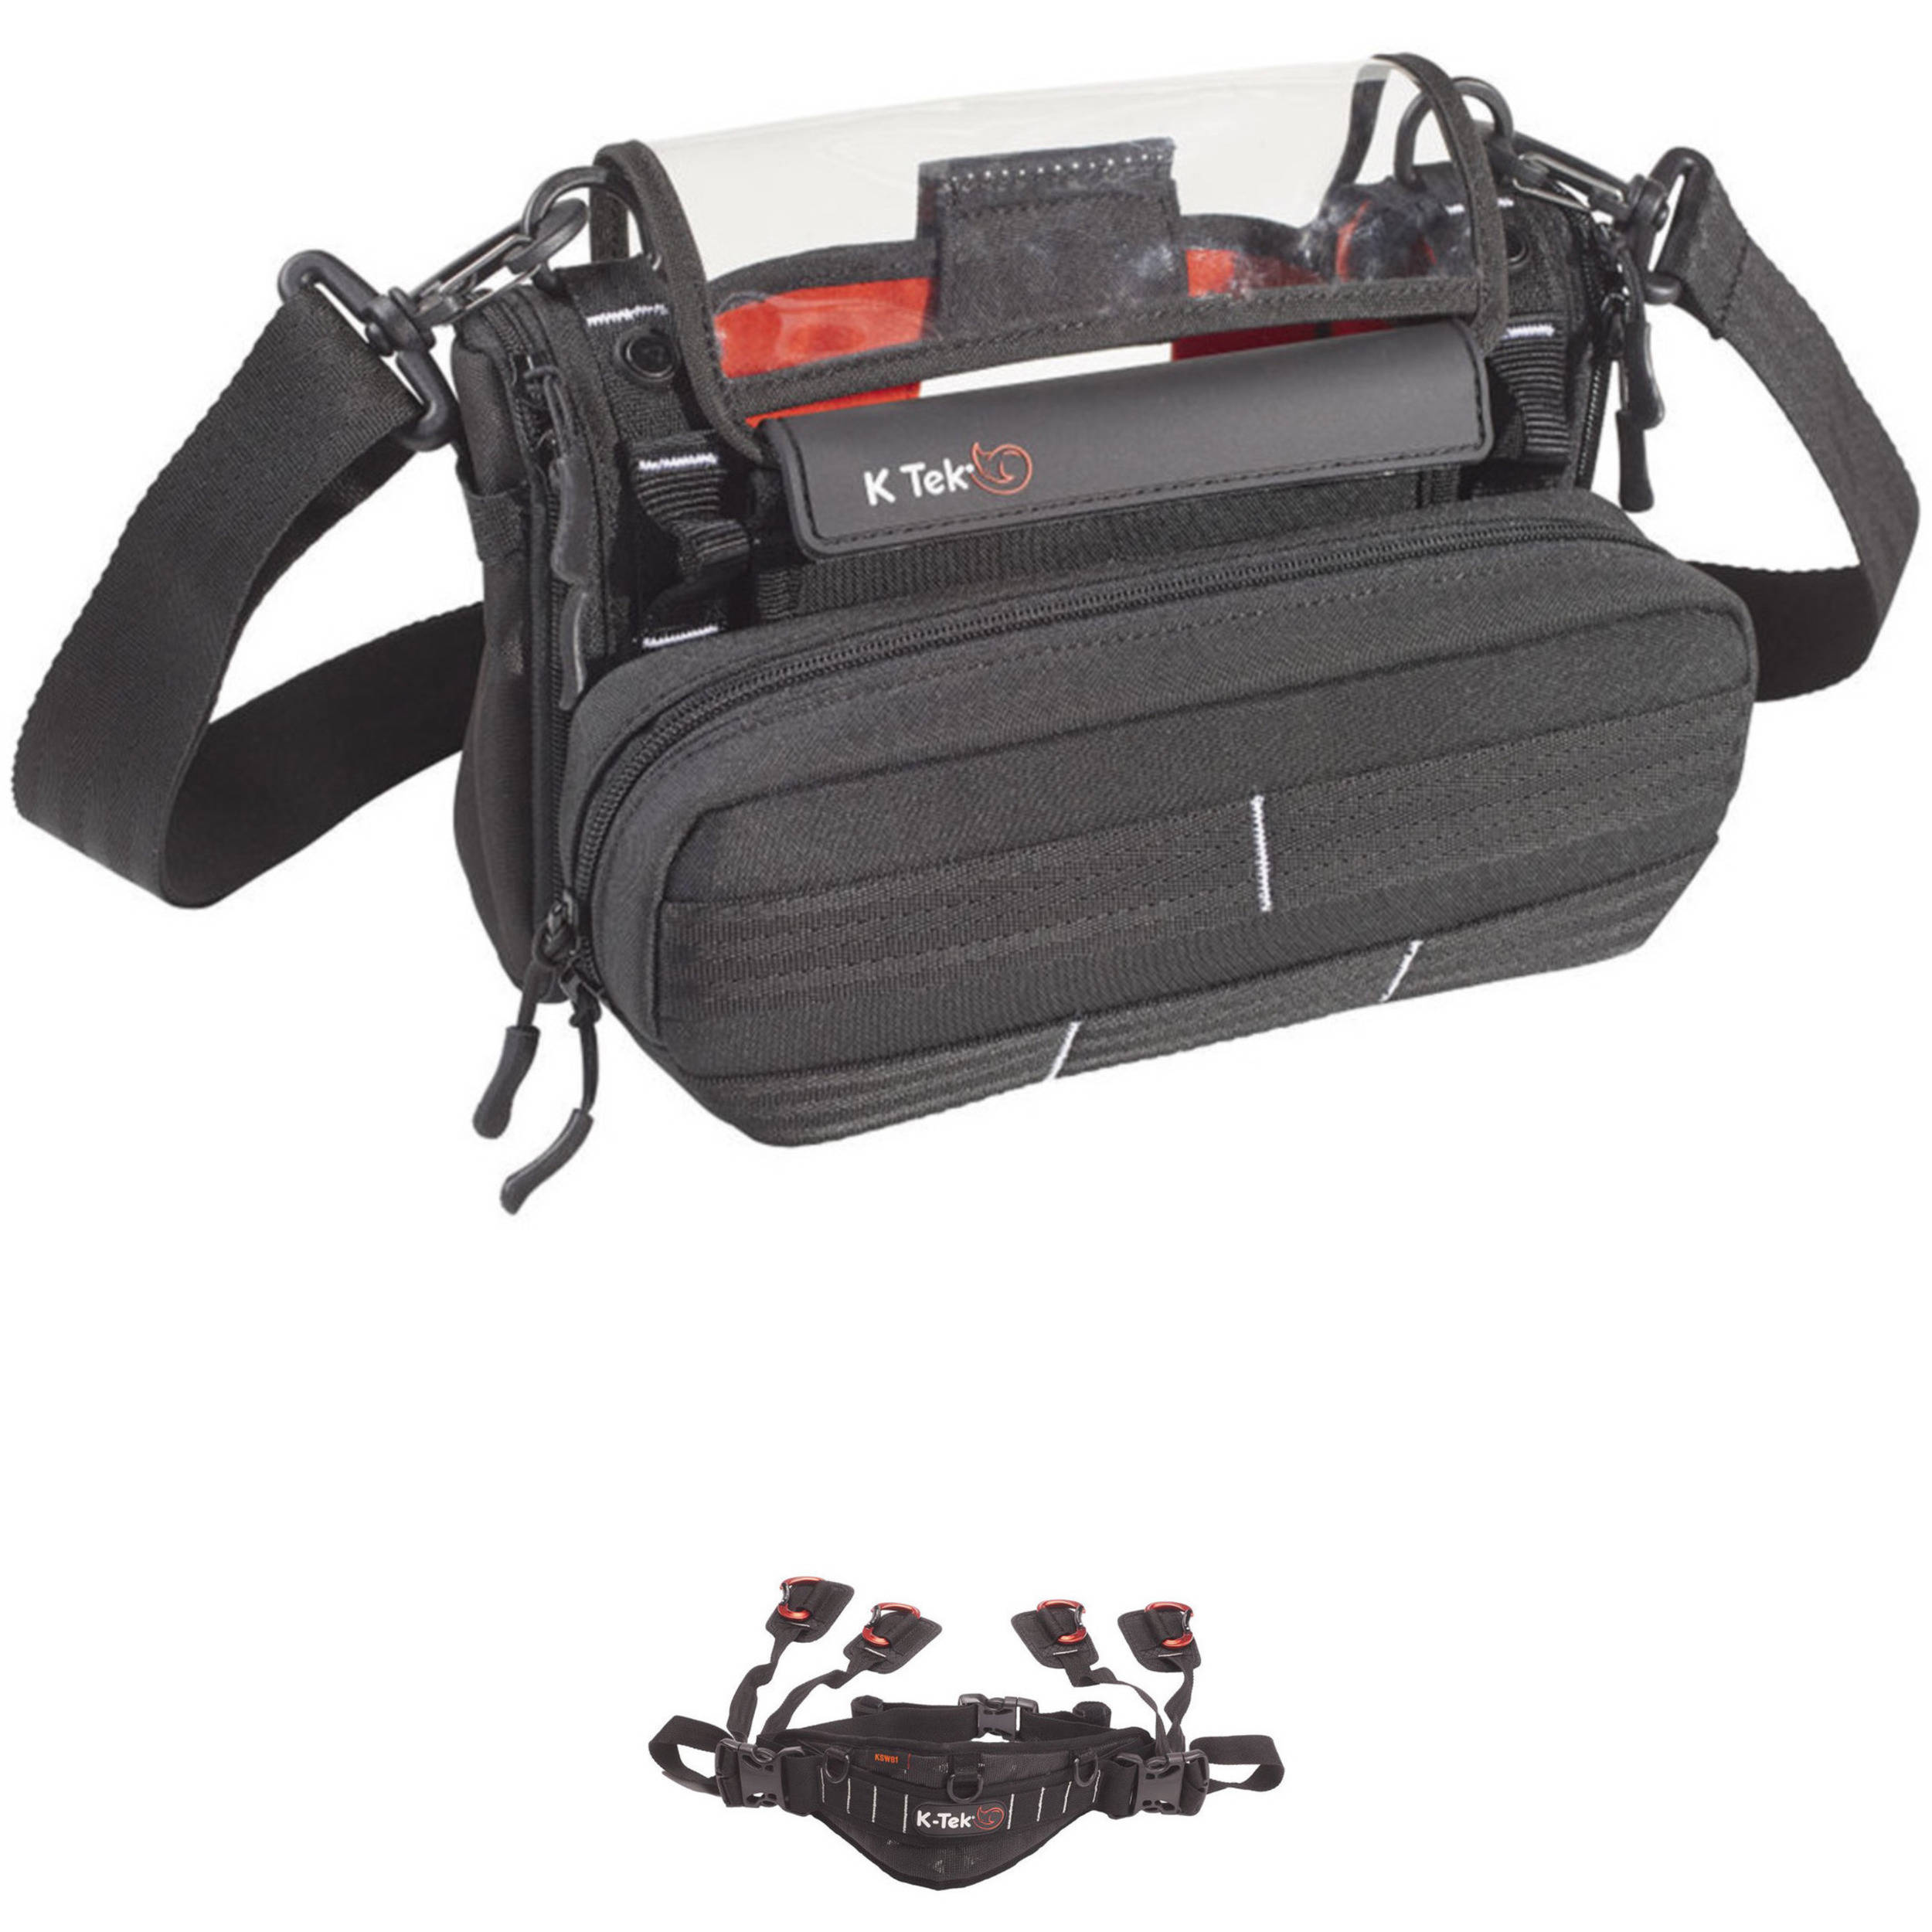 K-Tek Stingray MixPro Audio Bag and KSWB1 Waist Belt Kit